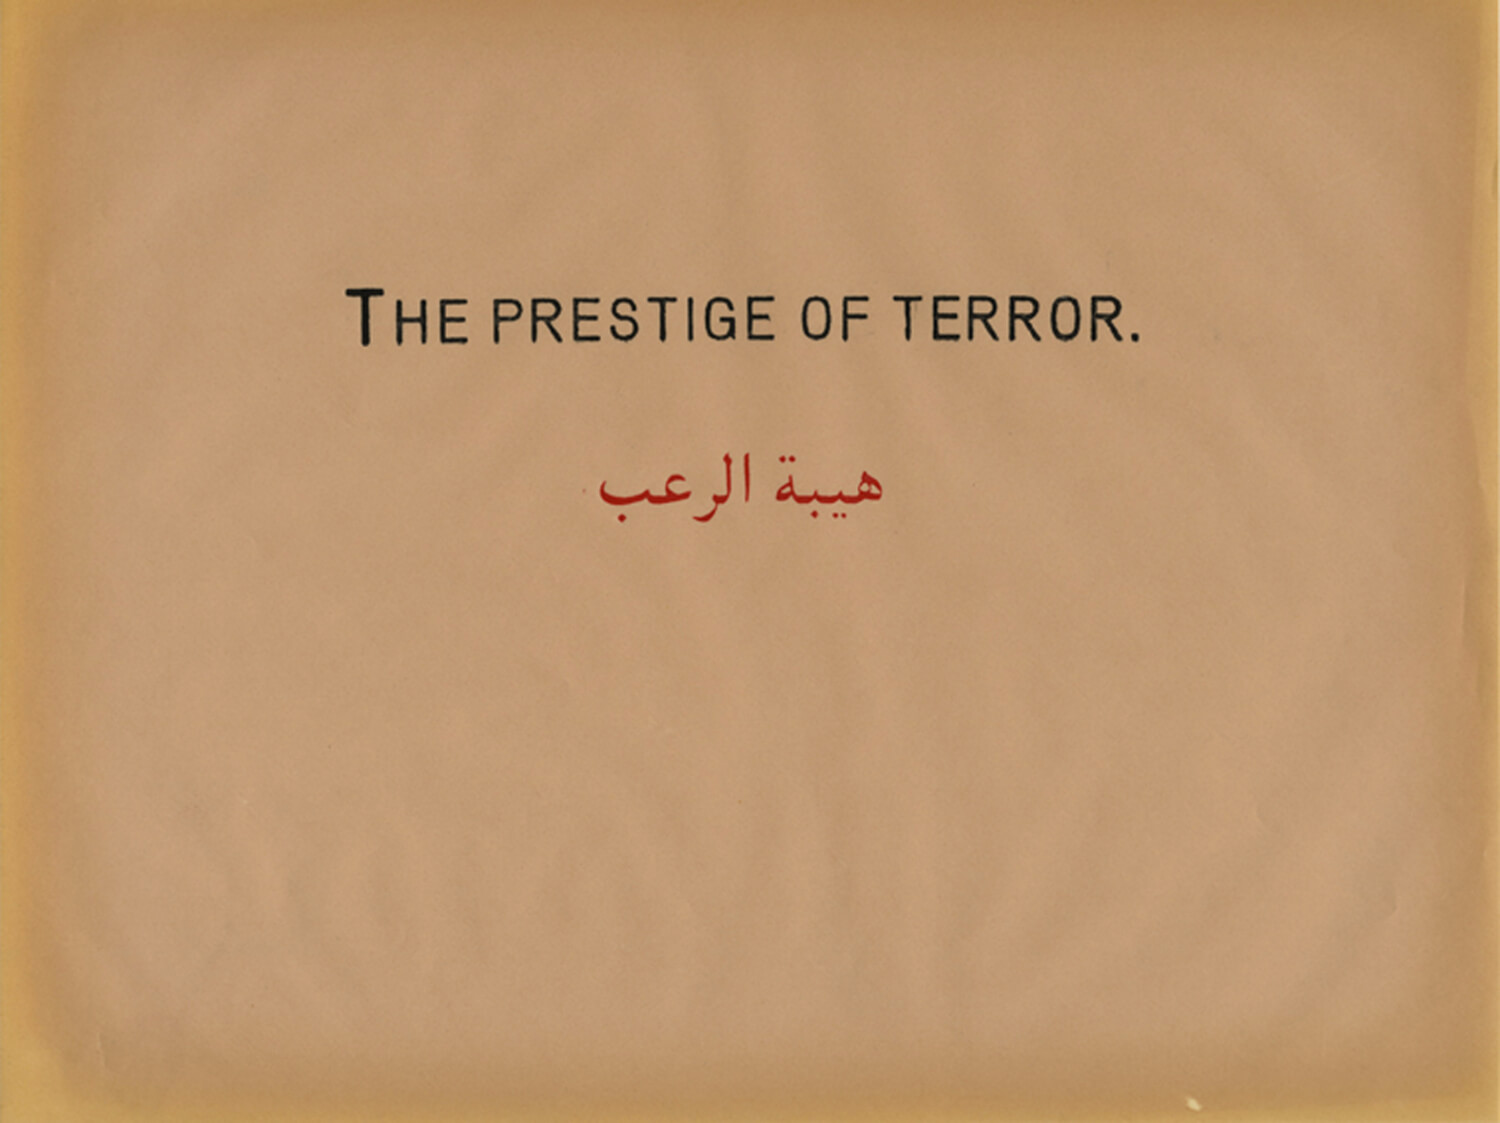 The Prestige of Terror, The Prestige of Terror, 2010, Work on paper, 22 x 28 cm